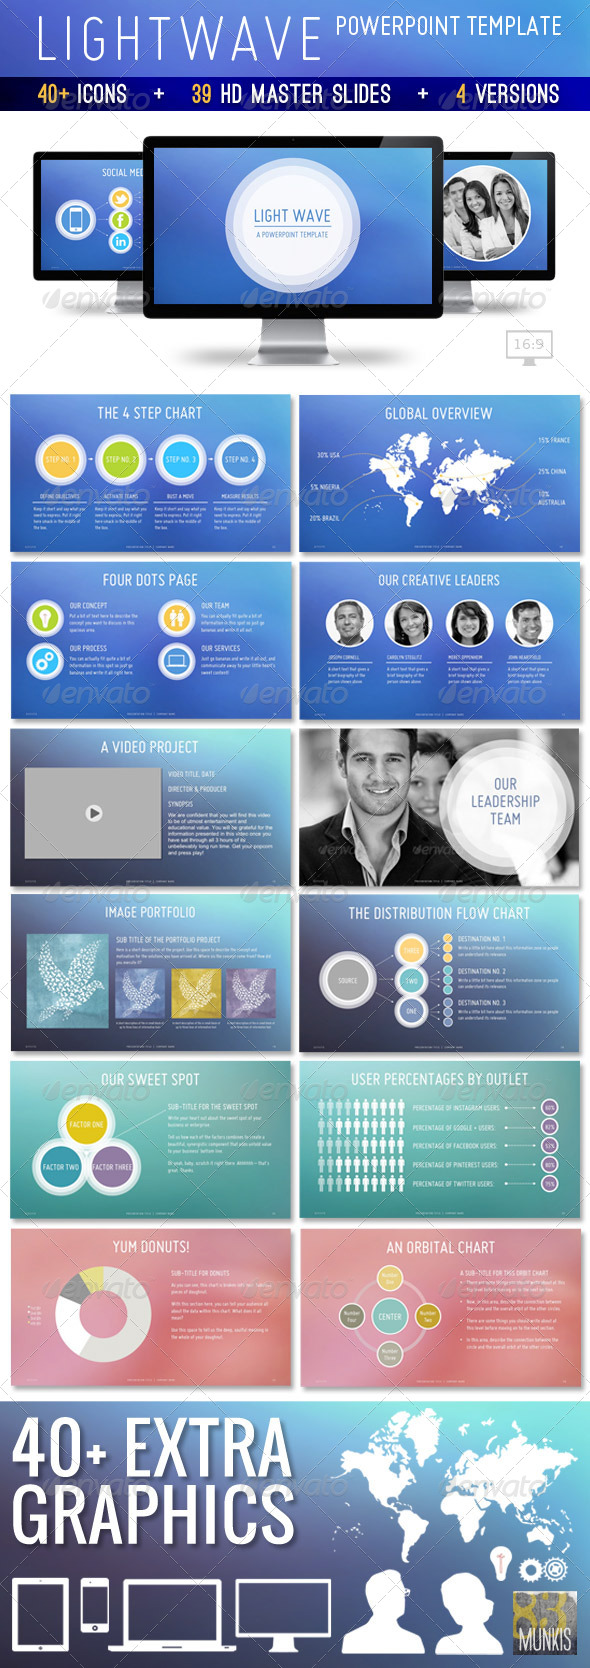 Lightwave Powerpoint Template - Business Powerpoint Templates